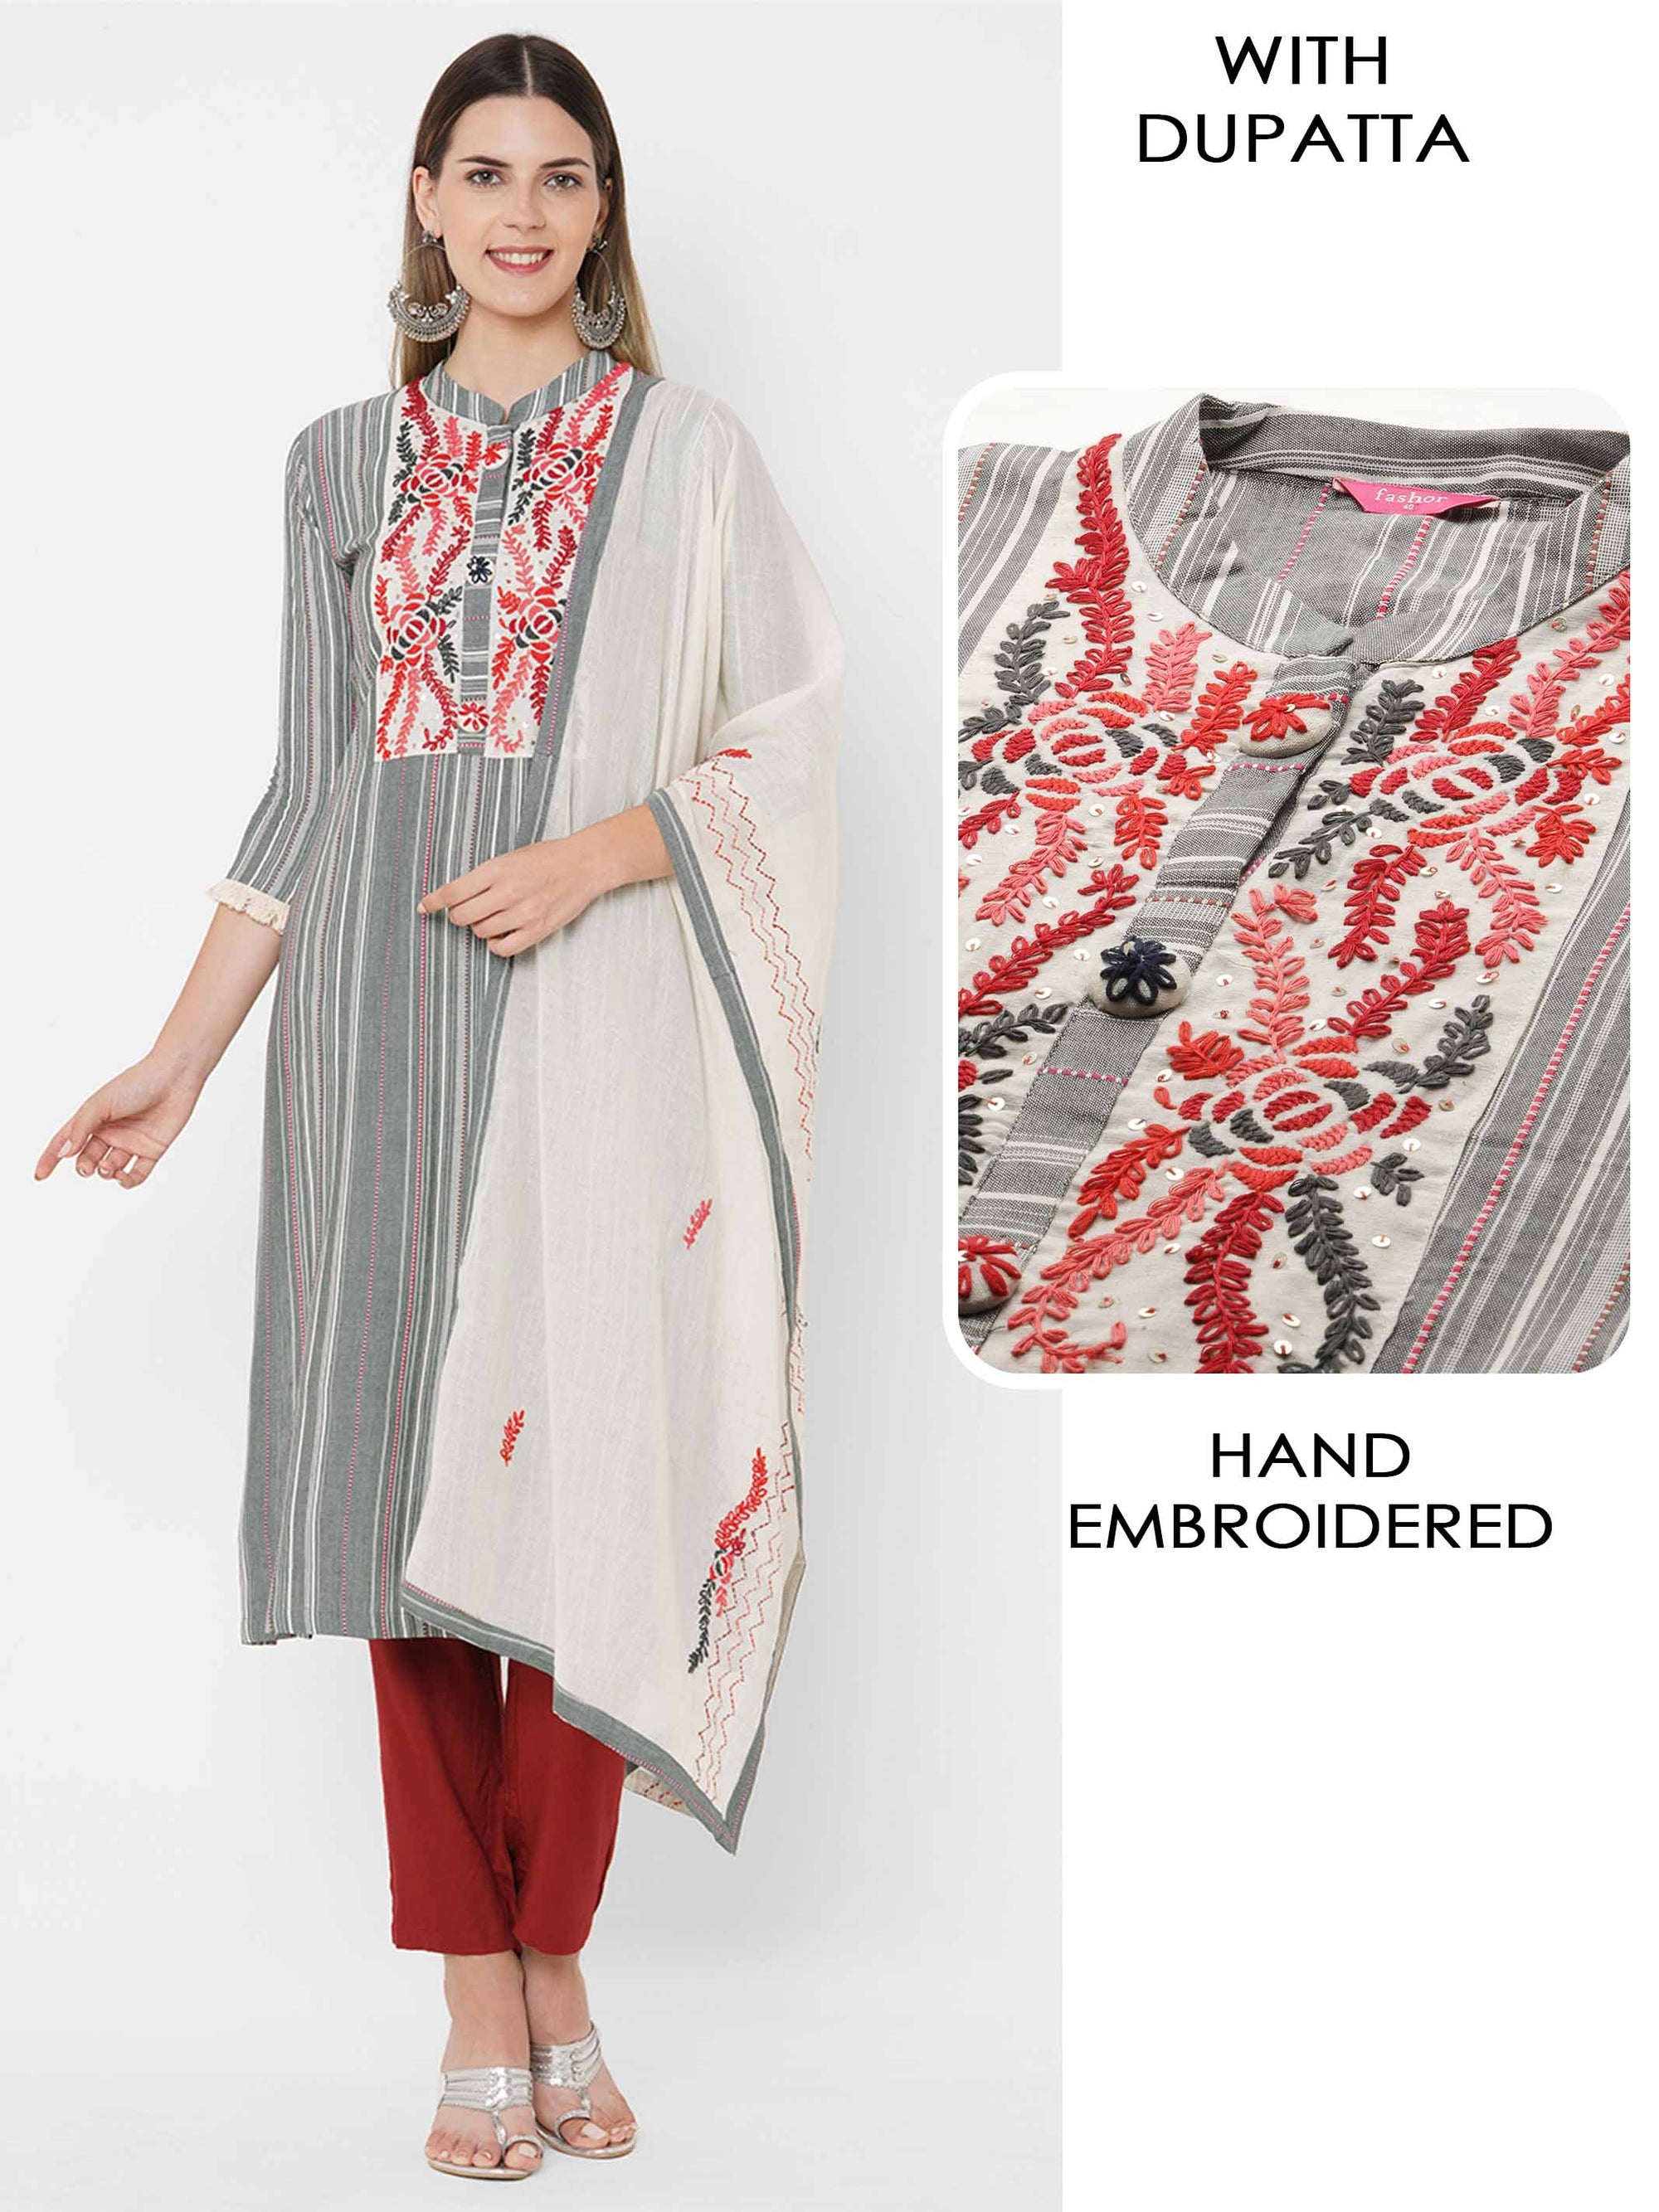 Woven Striped & Floral Hand Embroidered Kurta with Hand Embroidered Dupatta - Grey